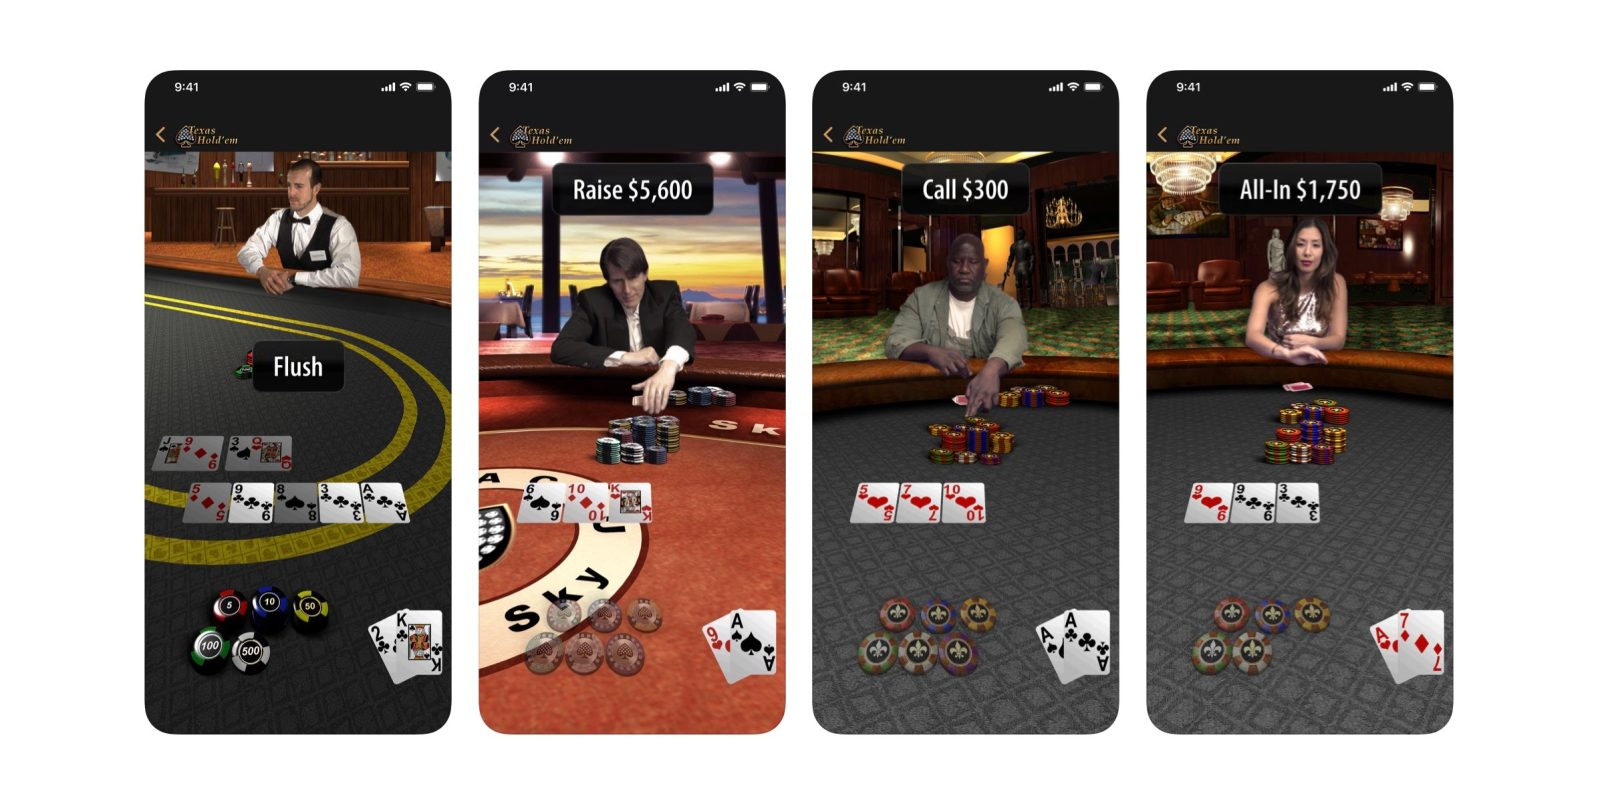 Apple revives classic Texas Hold'em iOS game - 9to5Mac